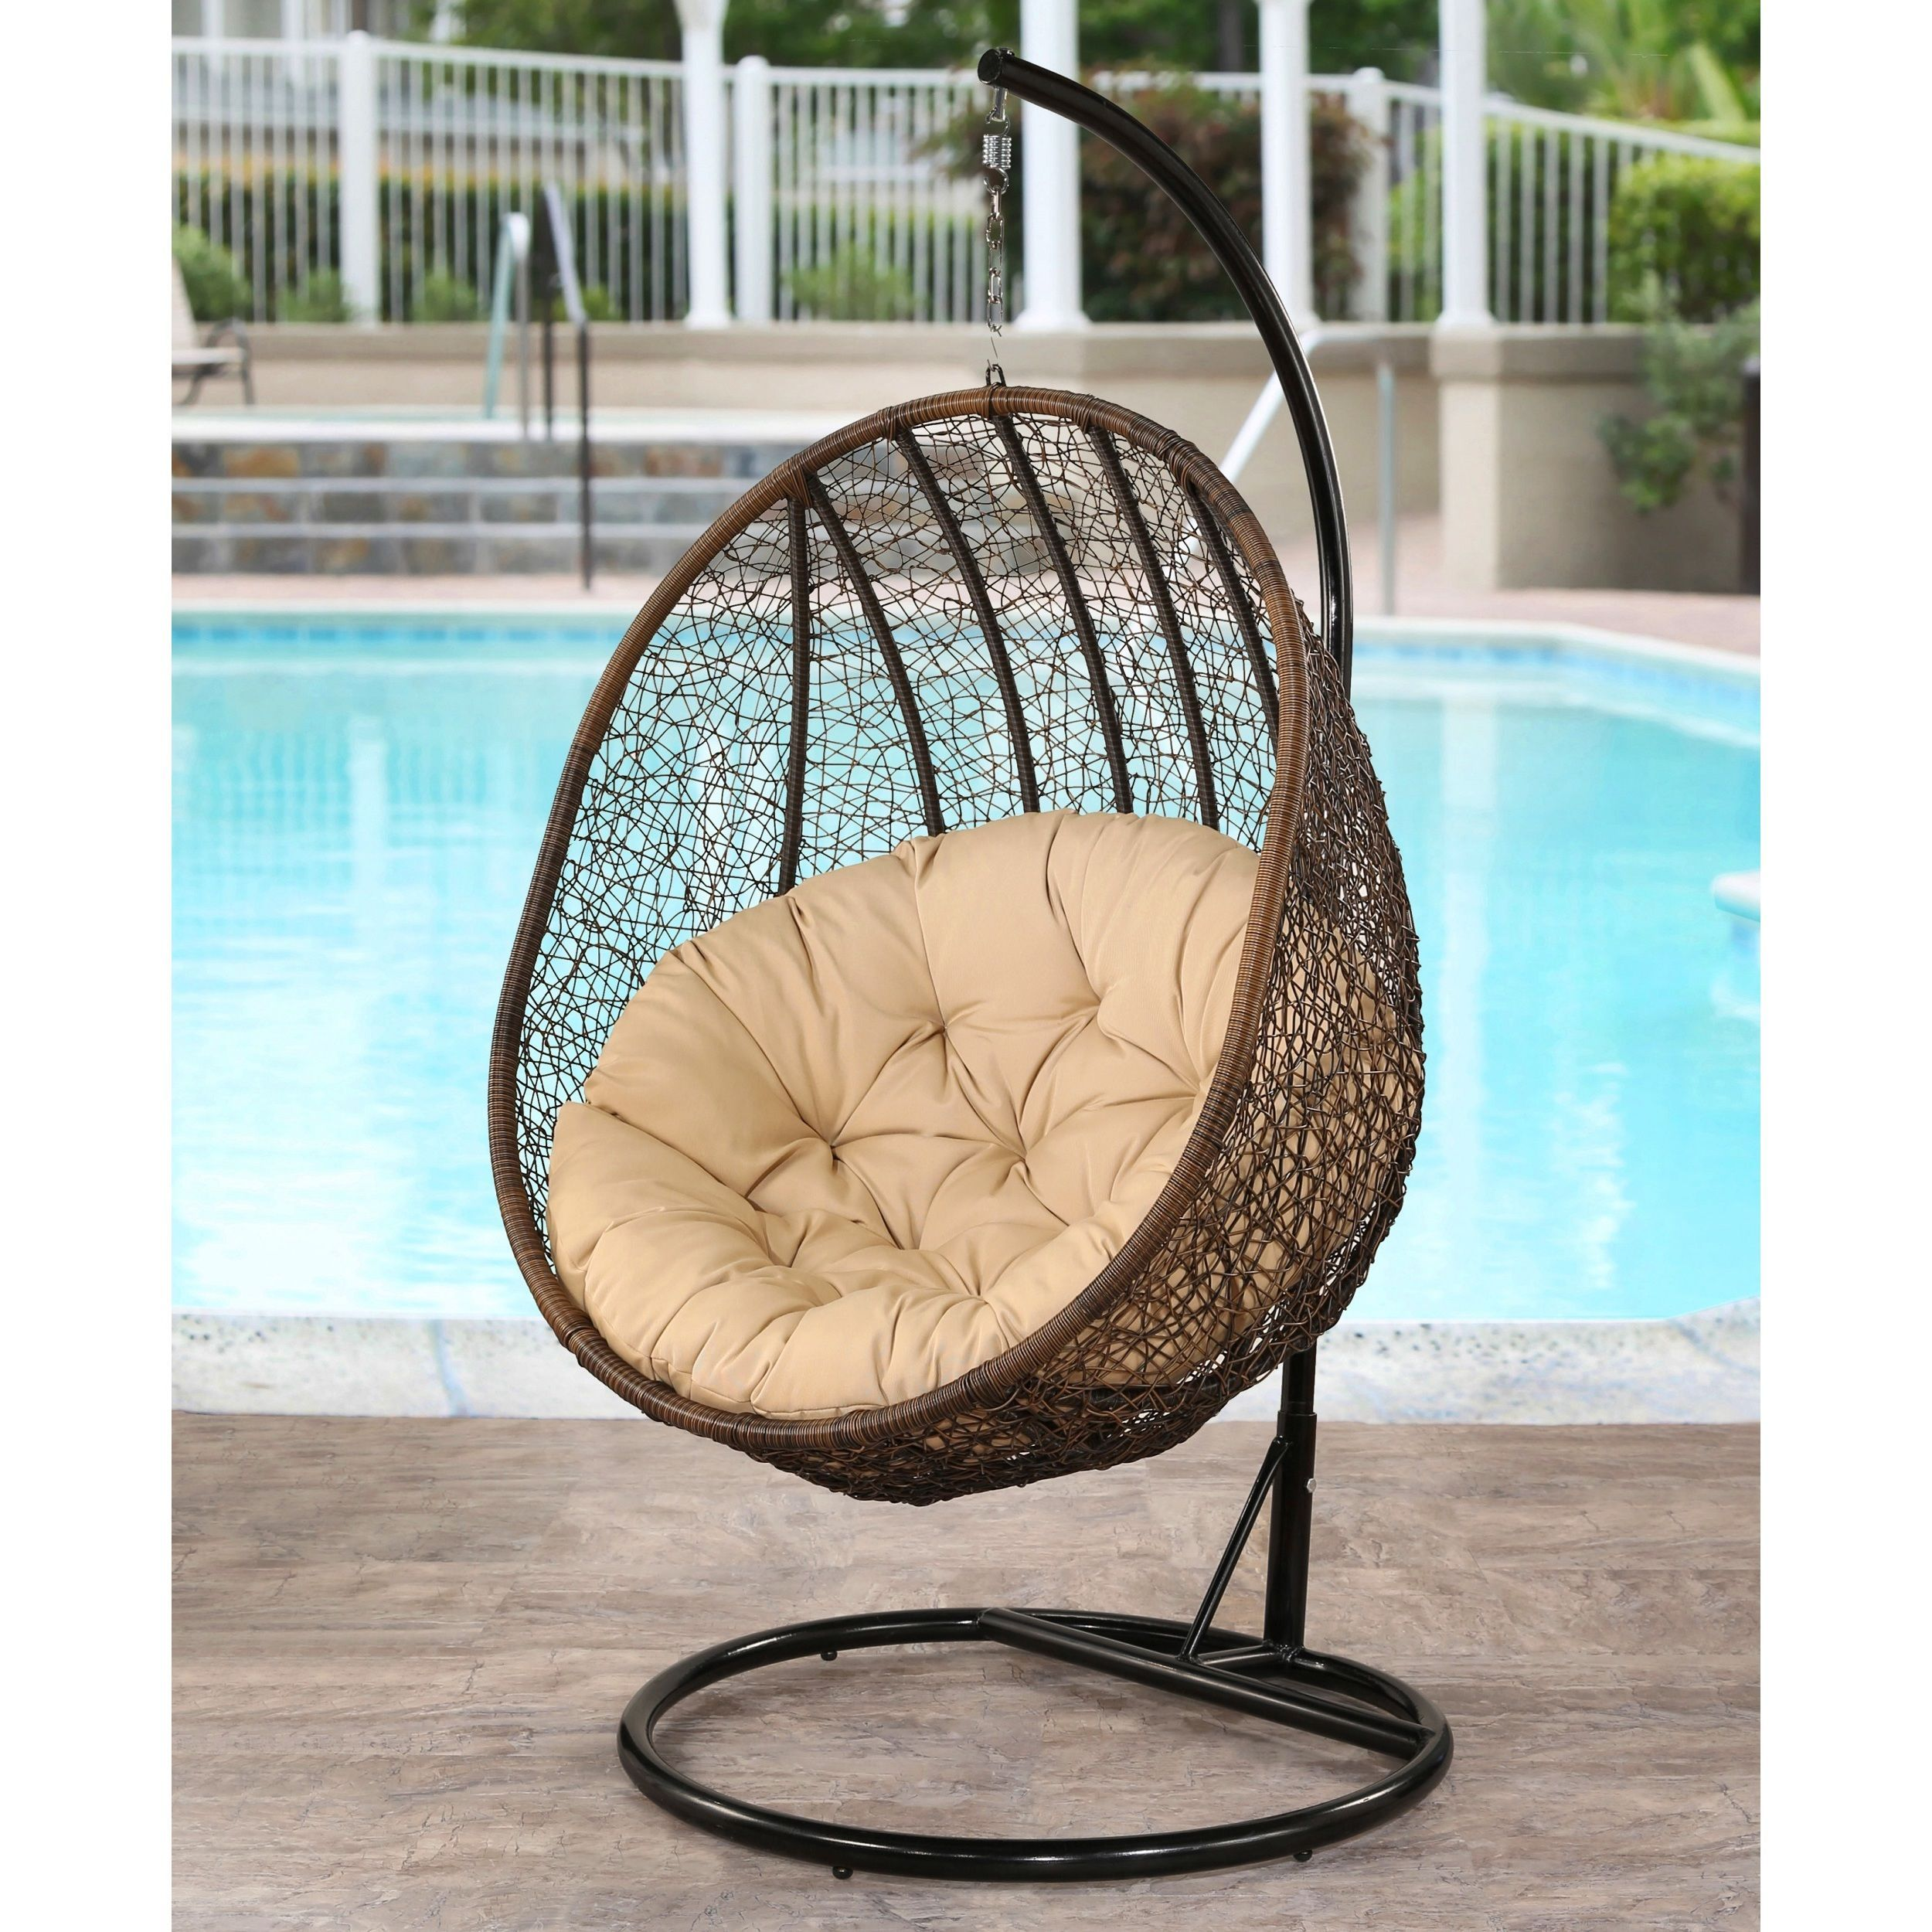 navy padded chairs hanging stripes the chair ultimate swinging hammock mesh pin